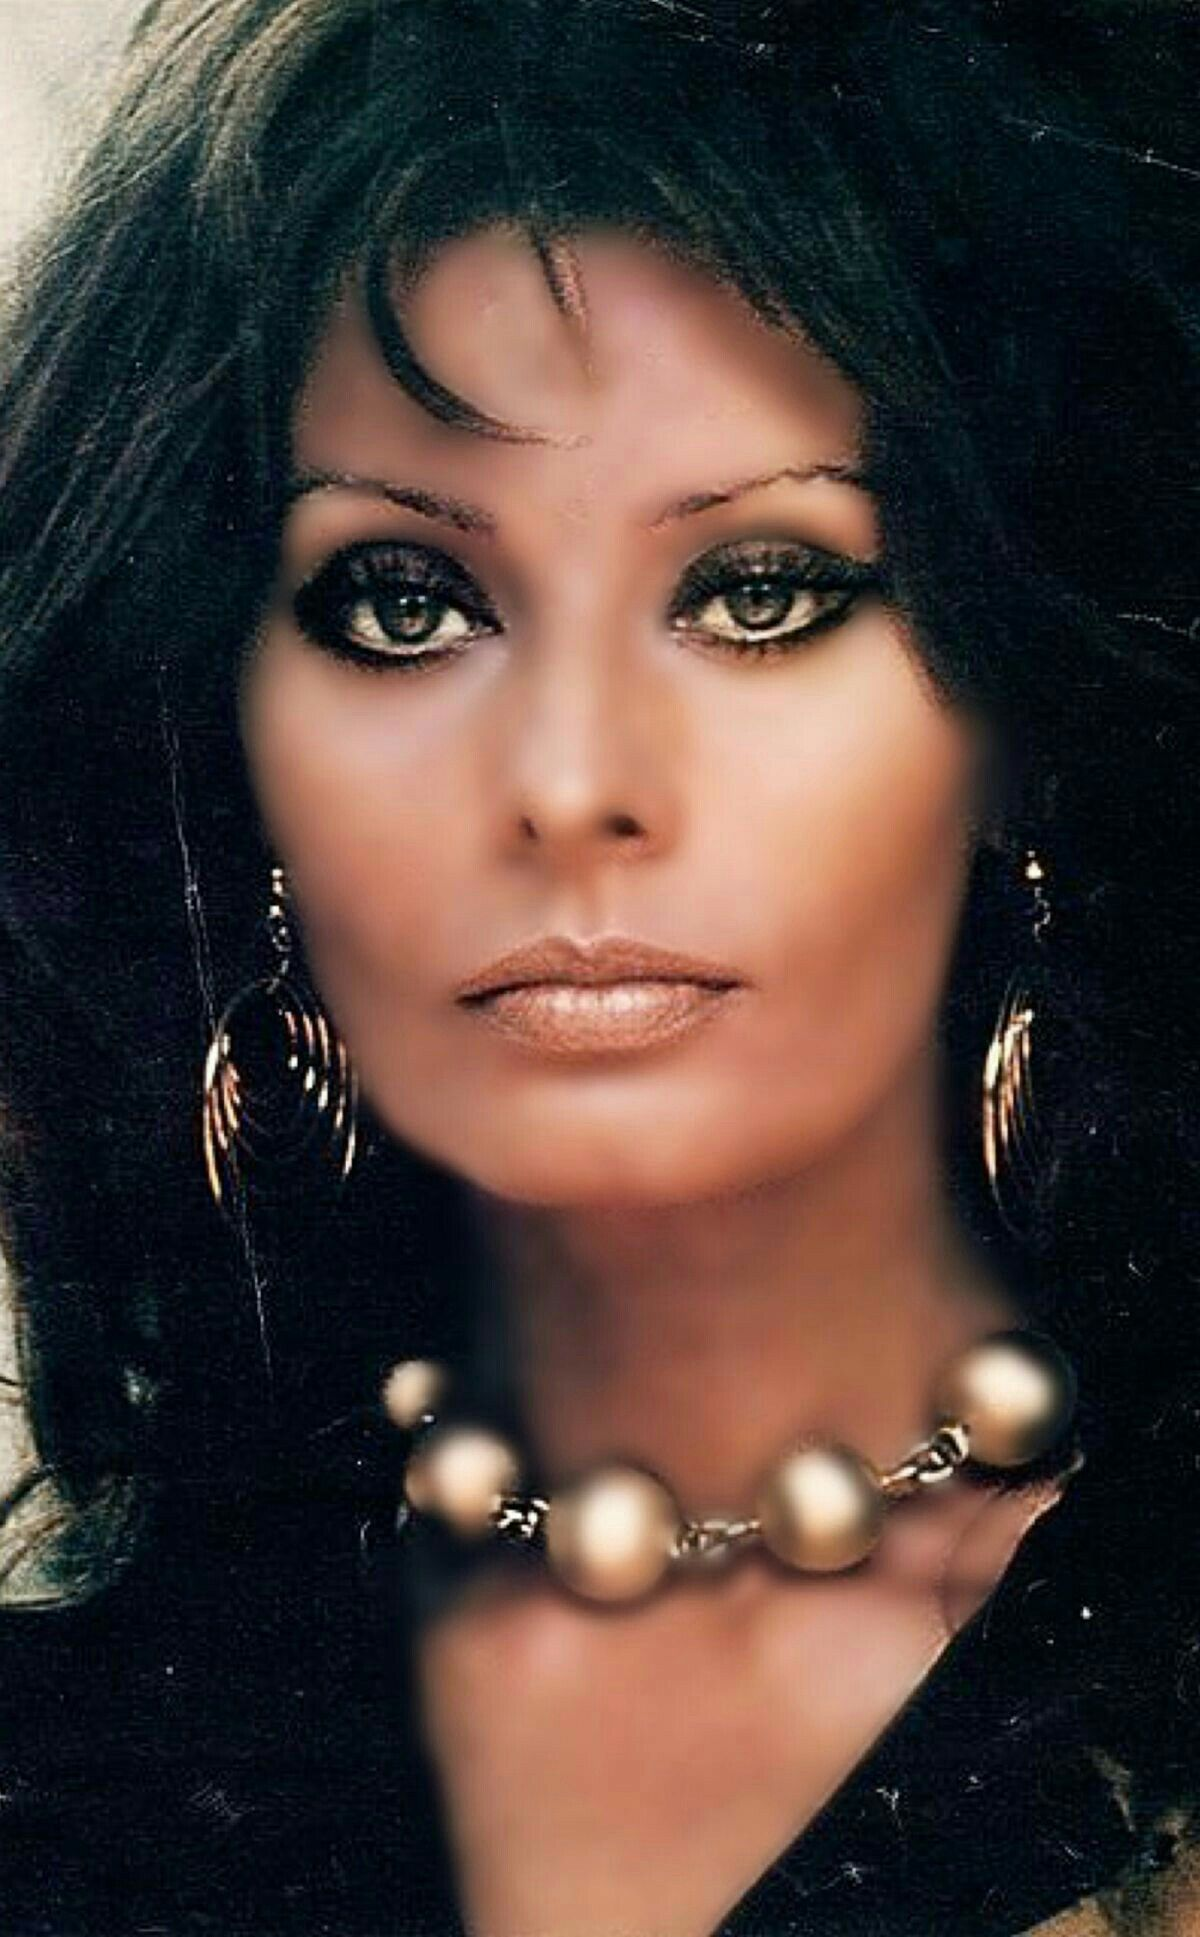 Pin By Dorelle Taylor On Perfect Faces Sophia Loren Images Actresses With Black Hair Sofia Loren